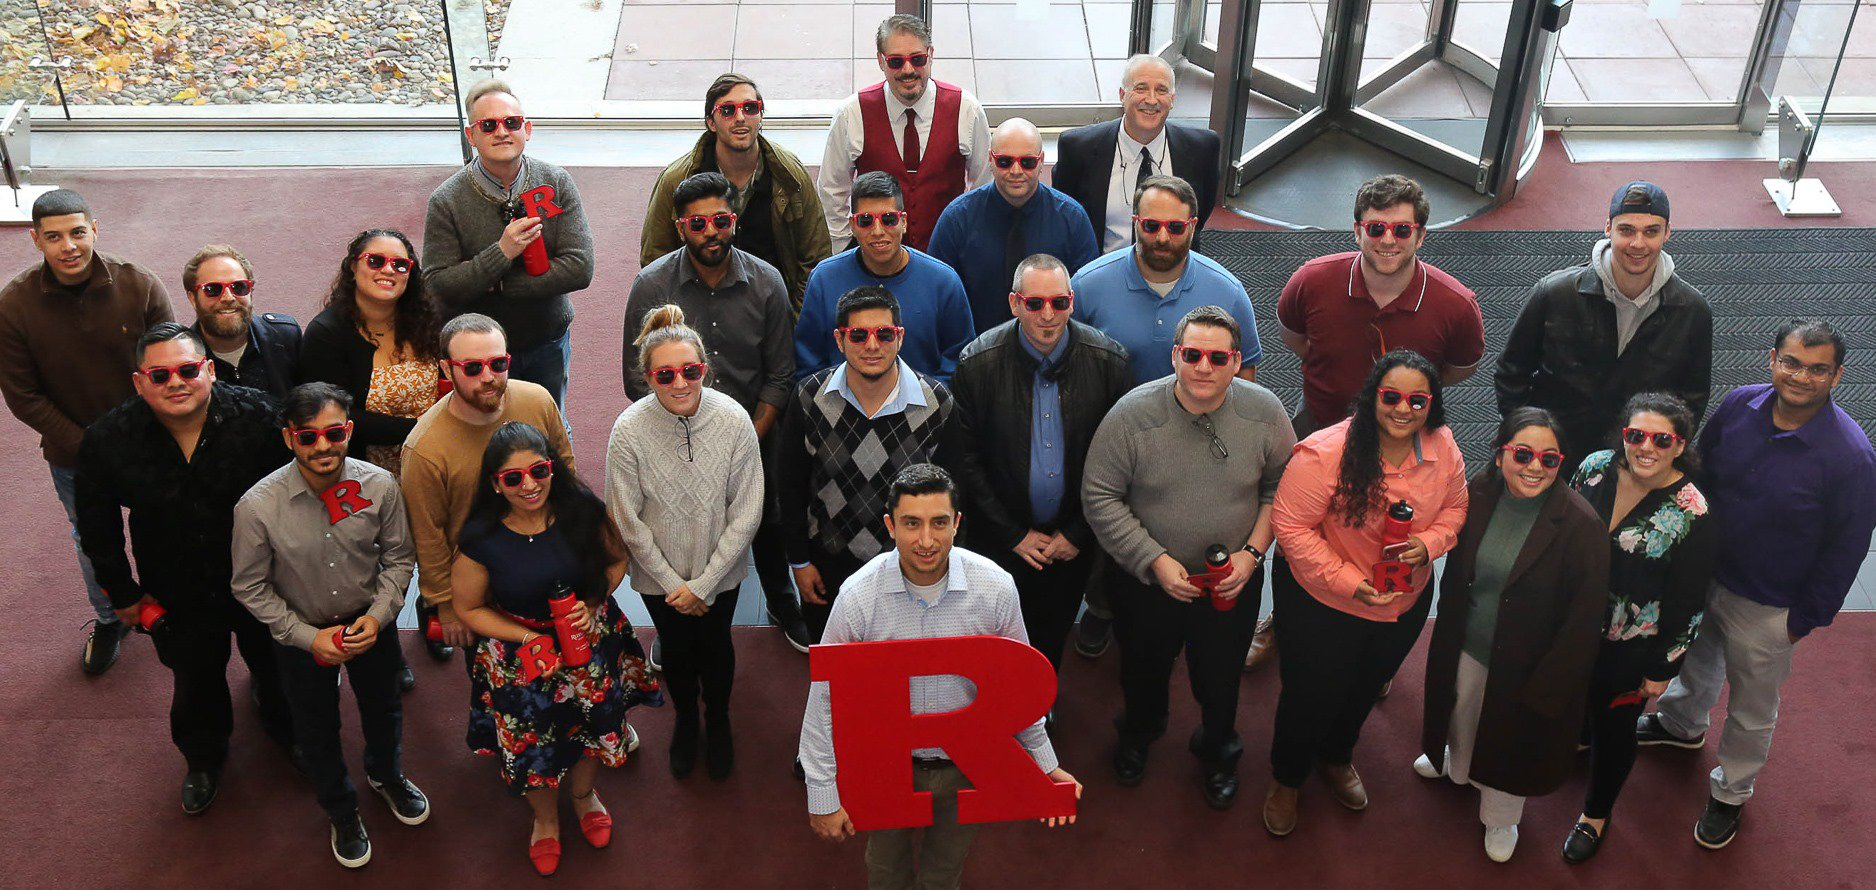 Rutgers boot camp students holding the letter R